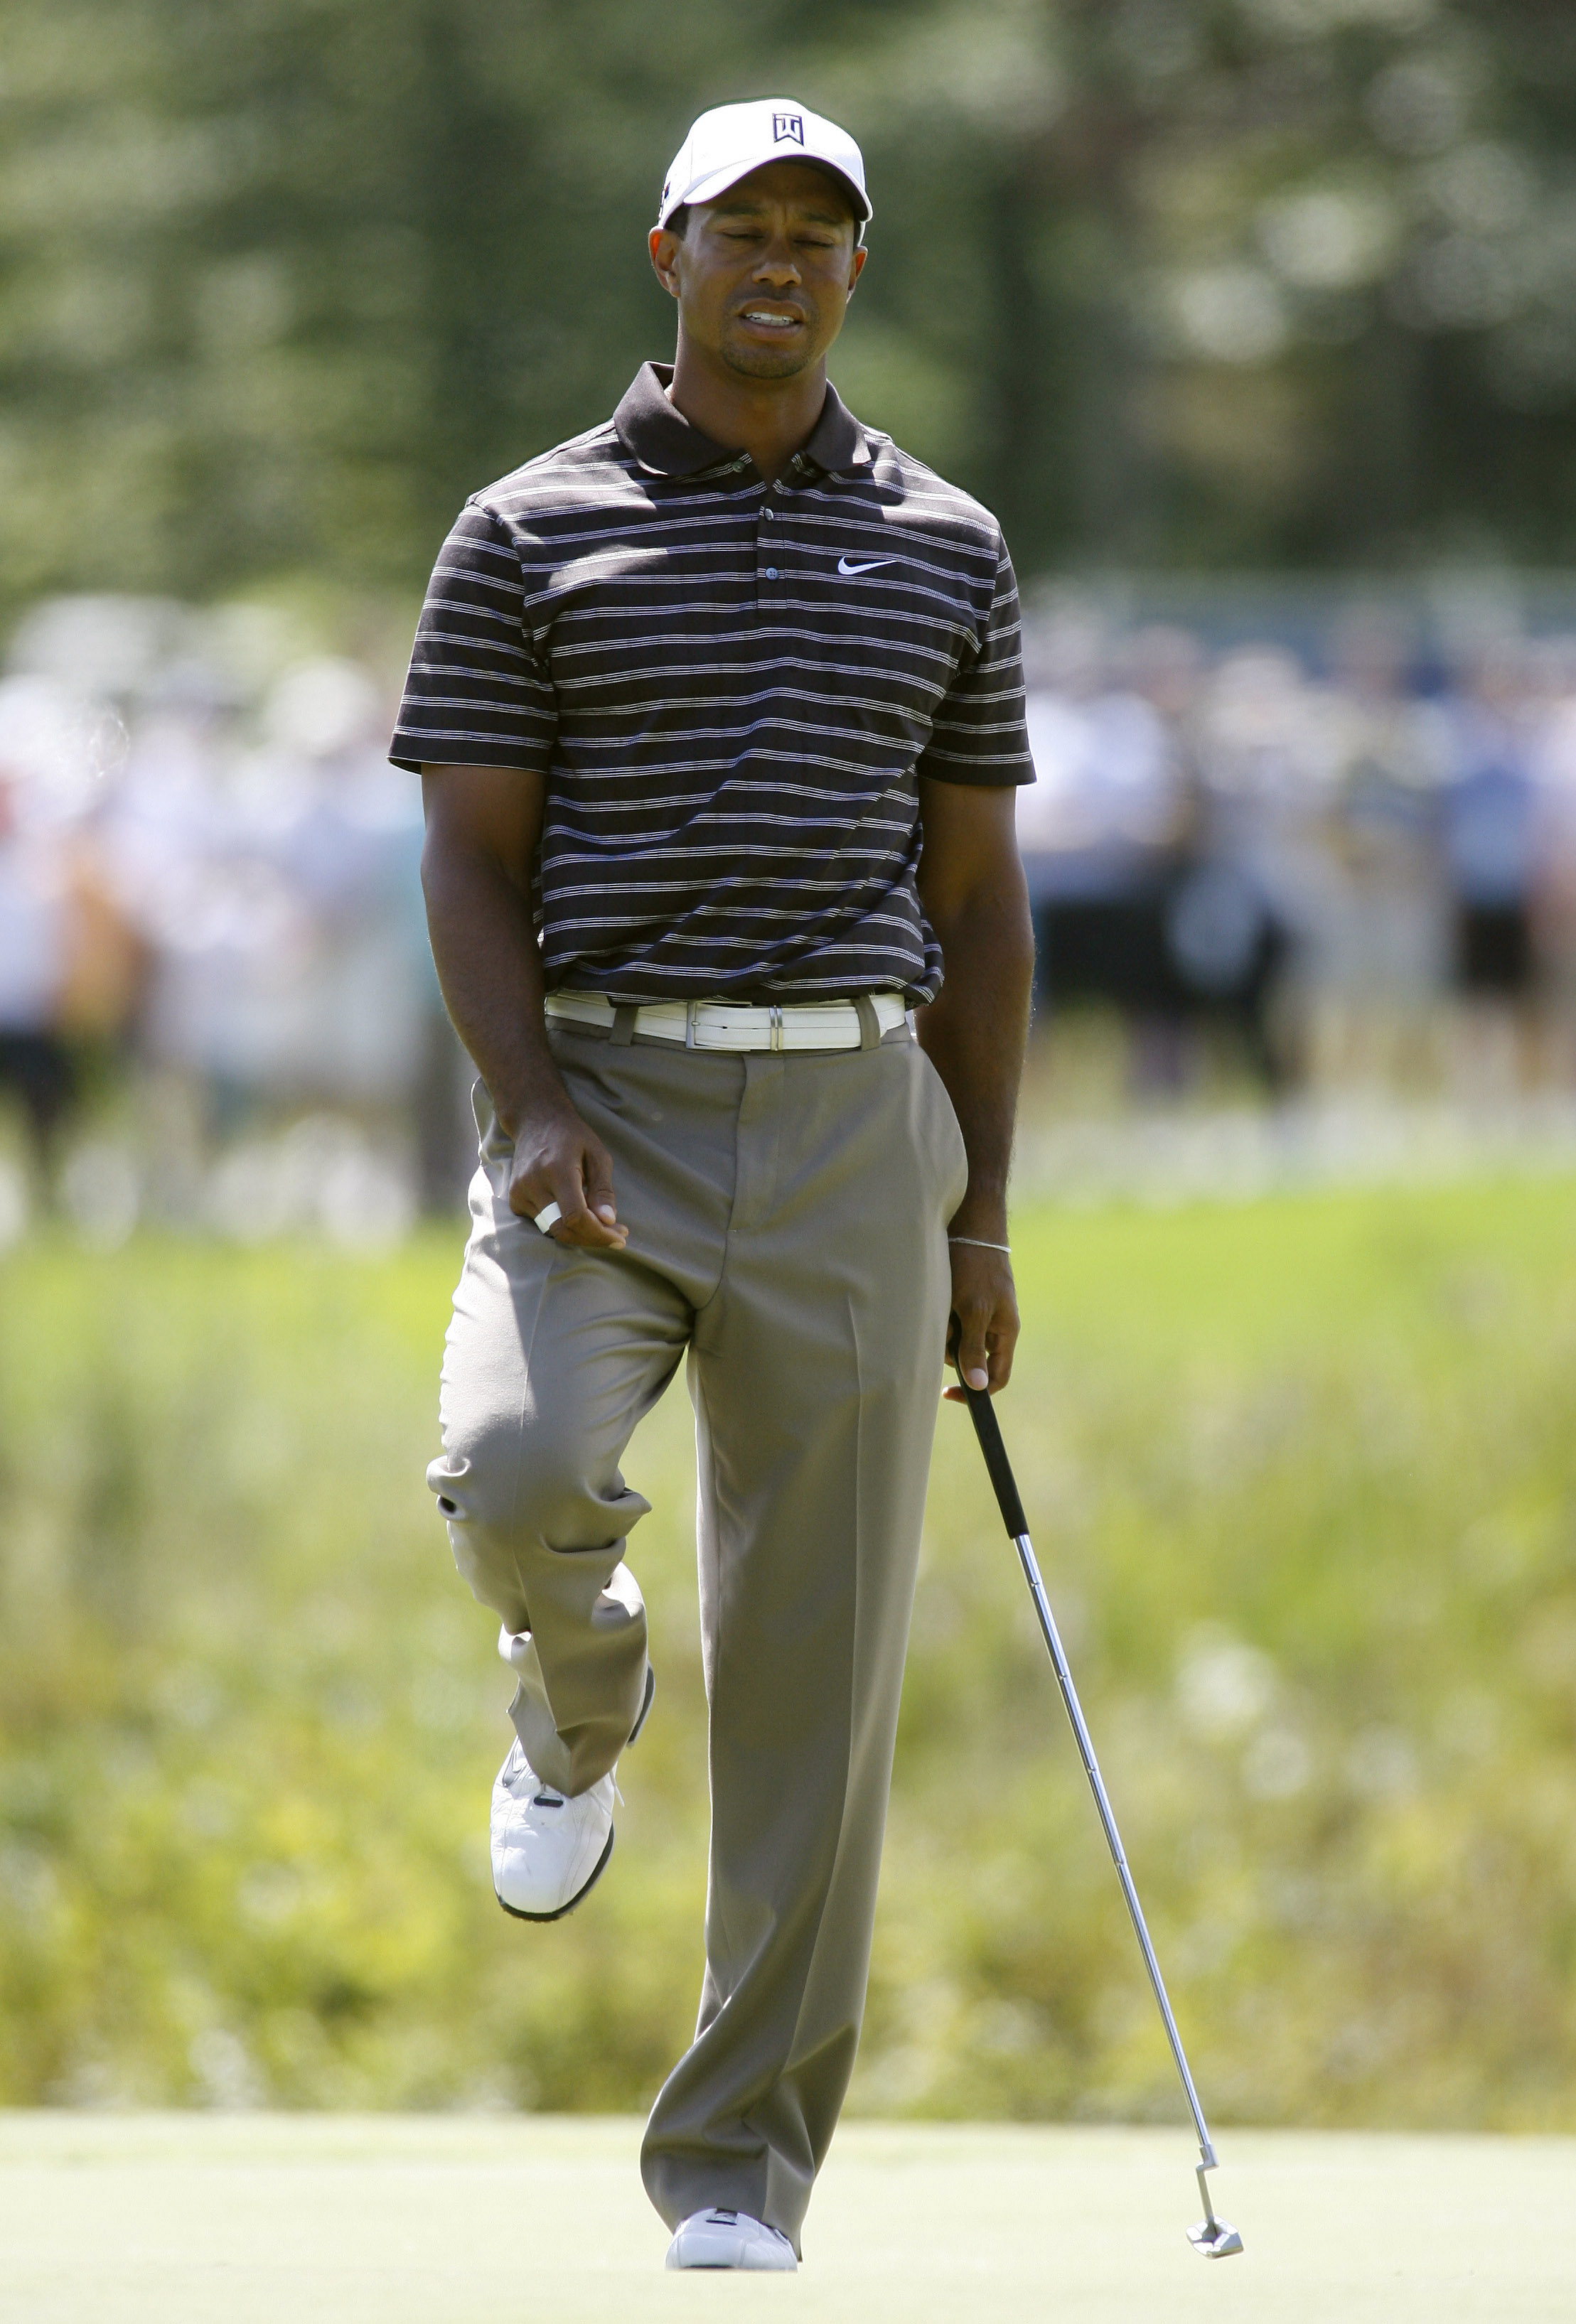 Tiger Woods during the third round of the Deutsche Bank Championship.